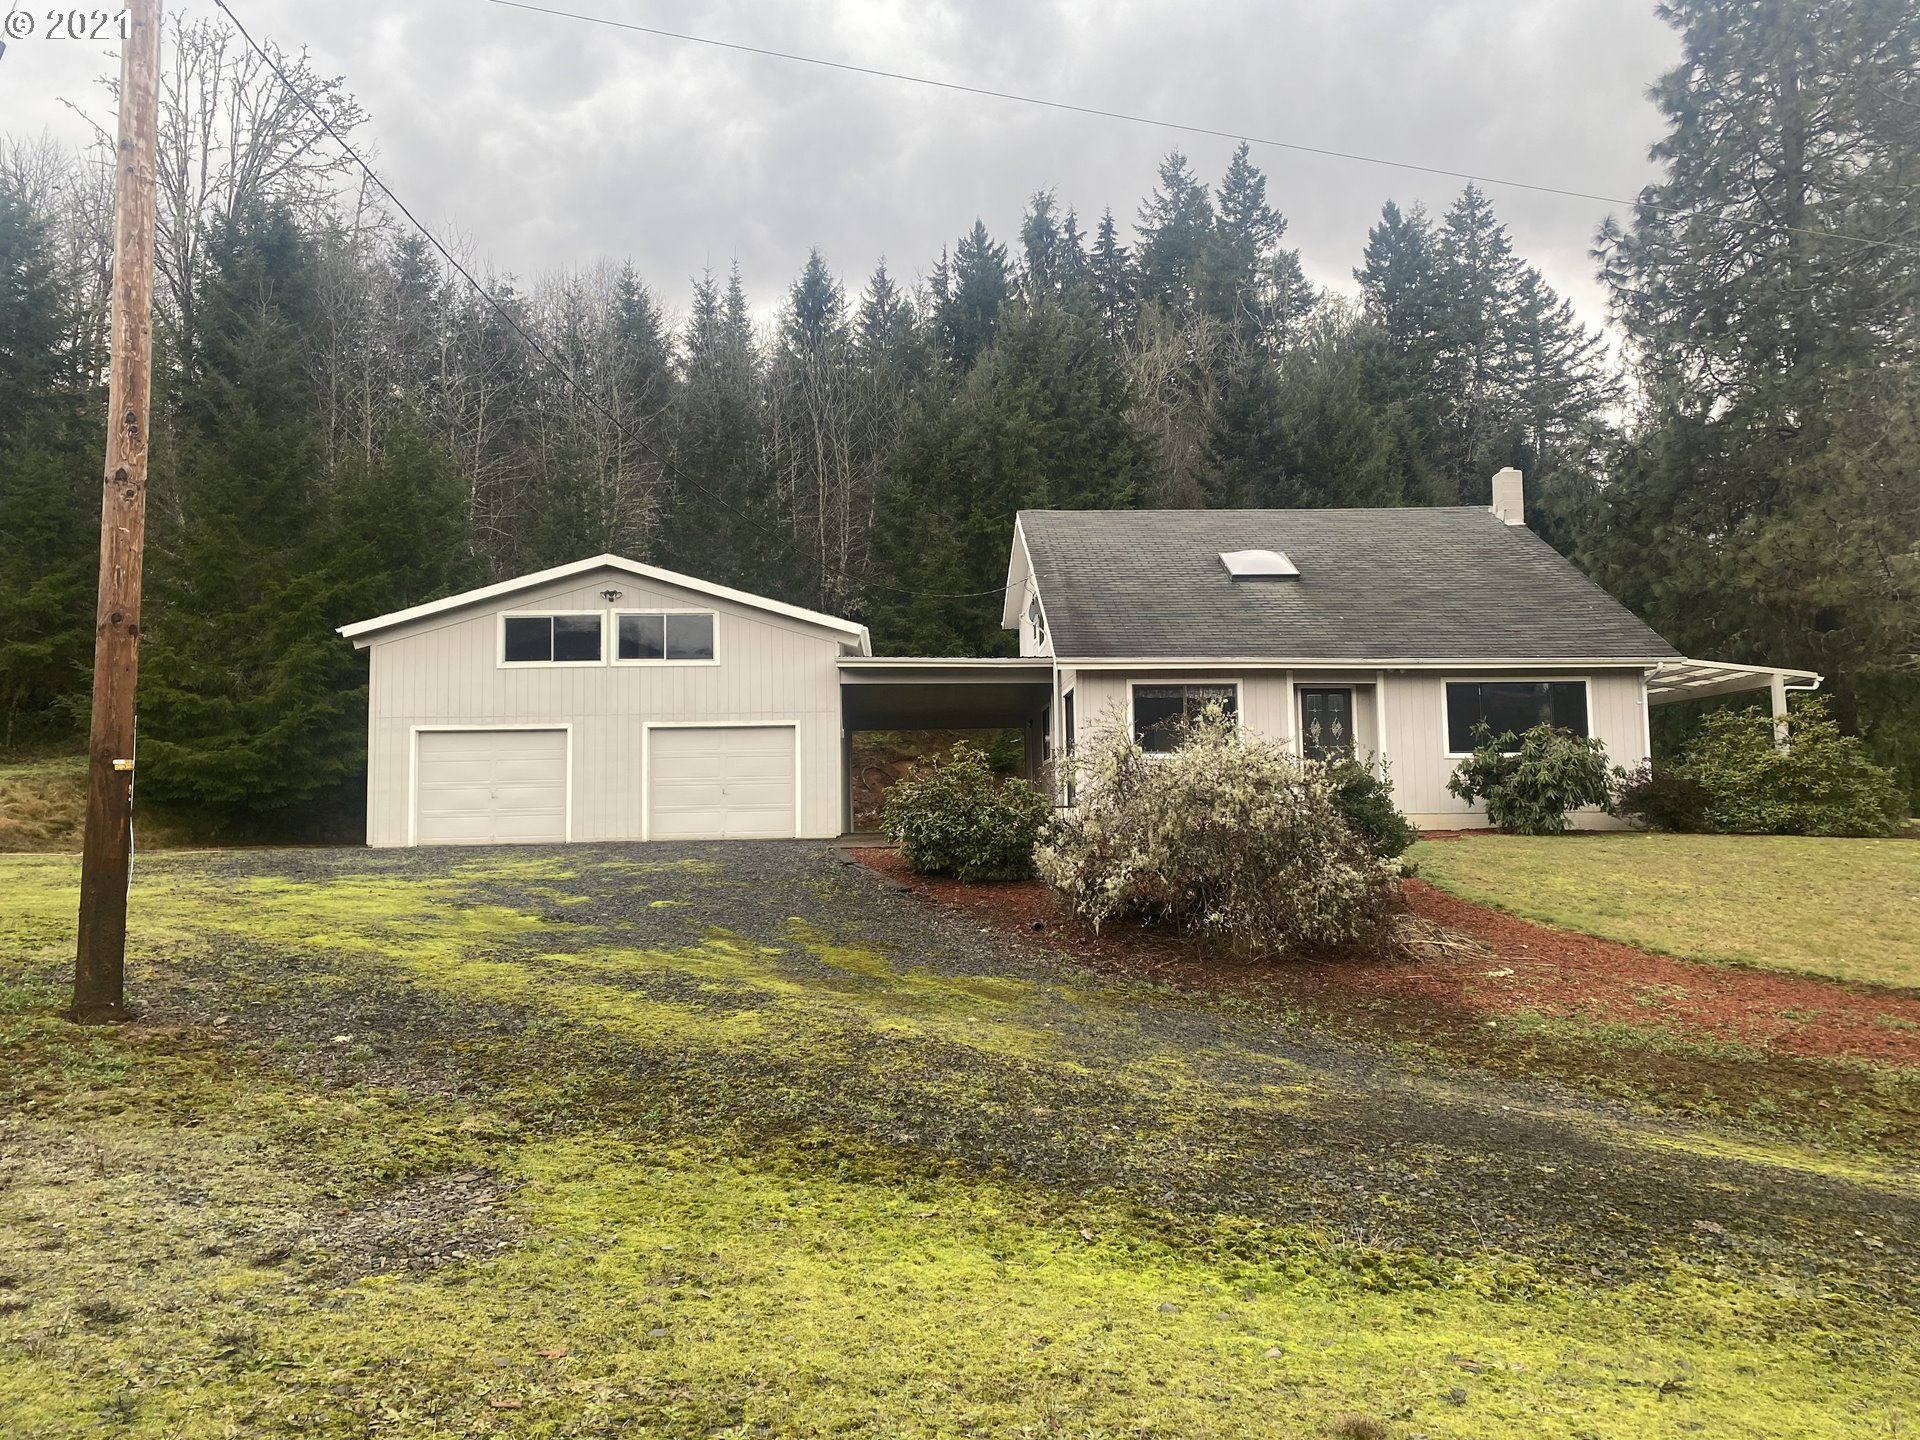 Photo for 39250 OLD GIUSTINA MILL RD, Dexter, OR 97431 (MLS # 21278538)